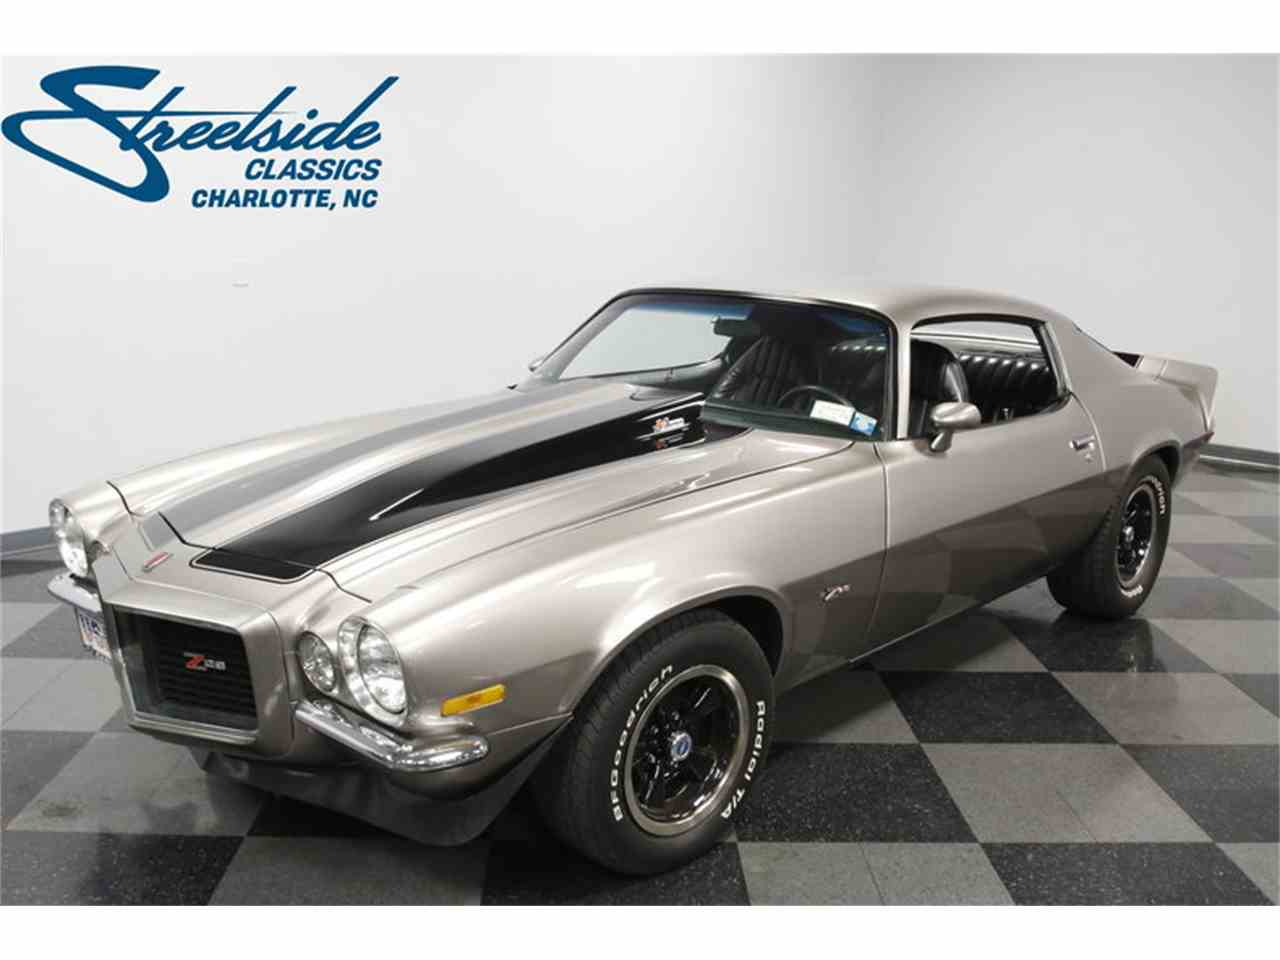 1972 Chevrolet Camaro Z28 For Sale Classiccars Com Cc 1062444